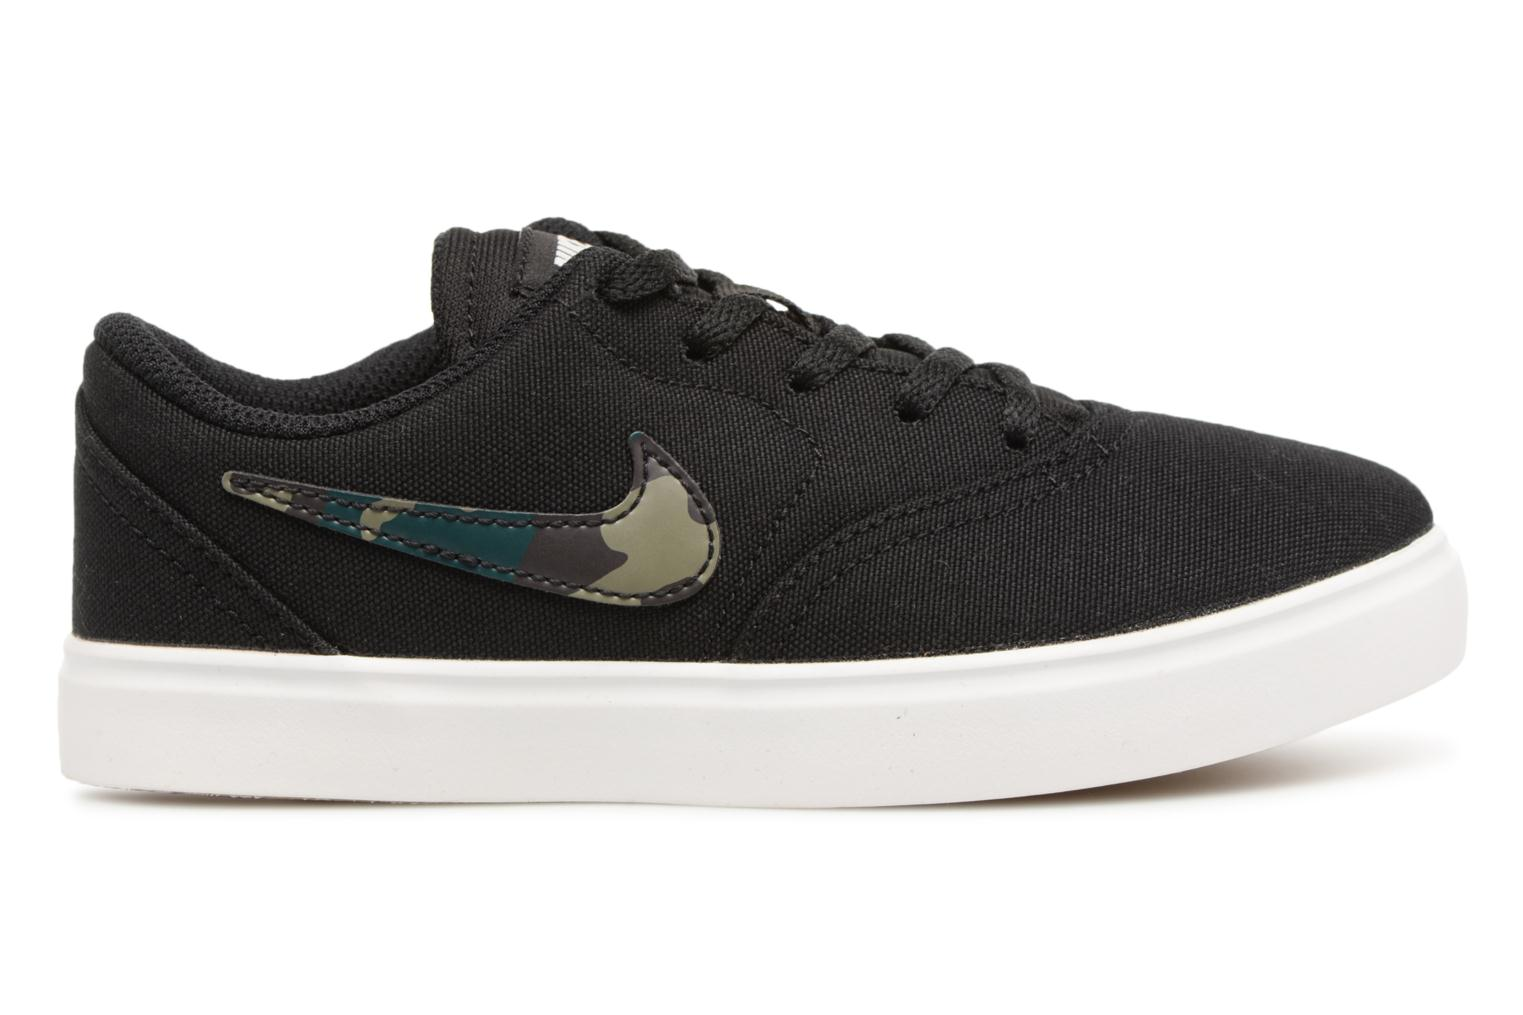 Black/Medium Olive-Pro Green Nike Nike Sb Check Cnvs (Ps) (Noir)